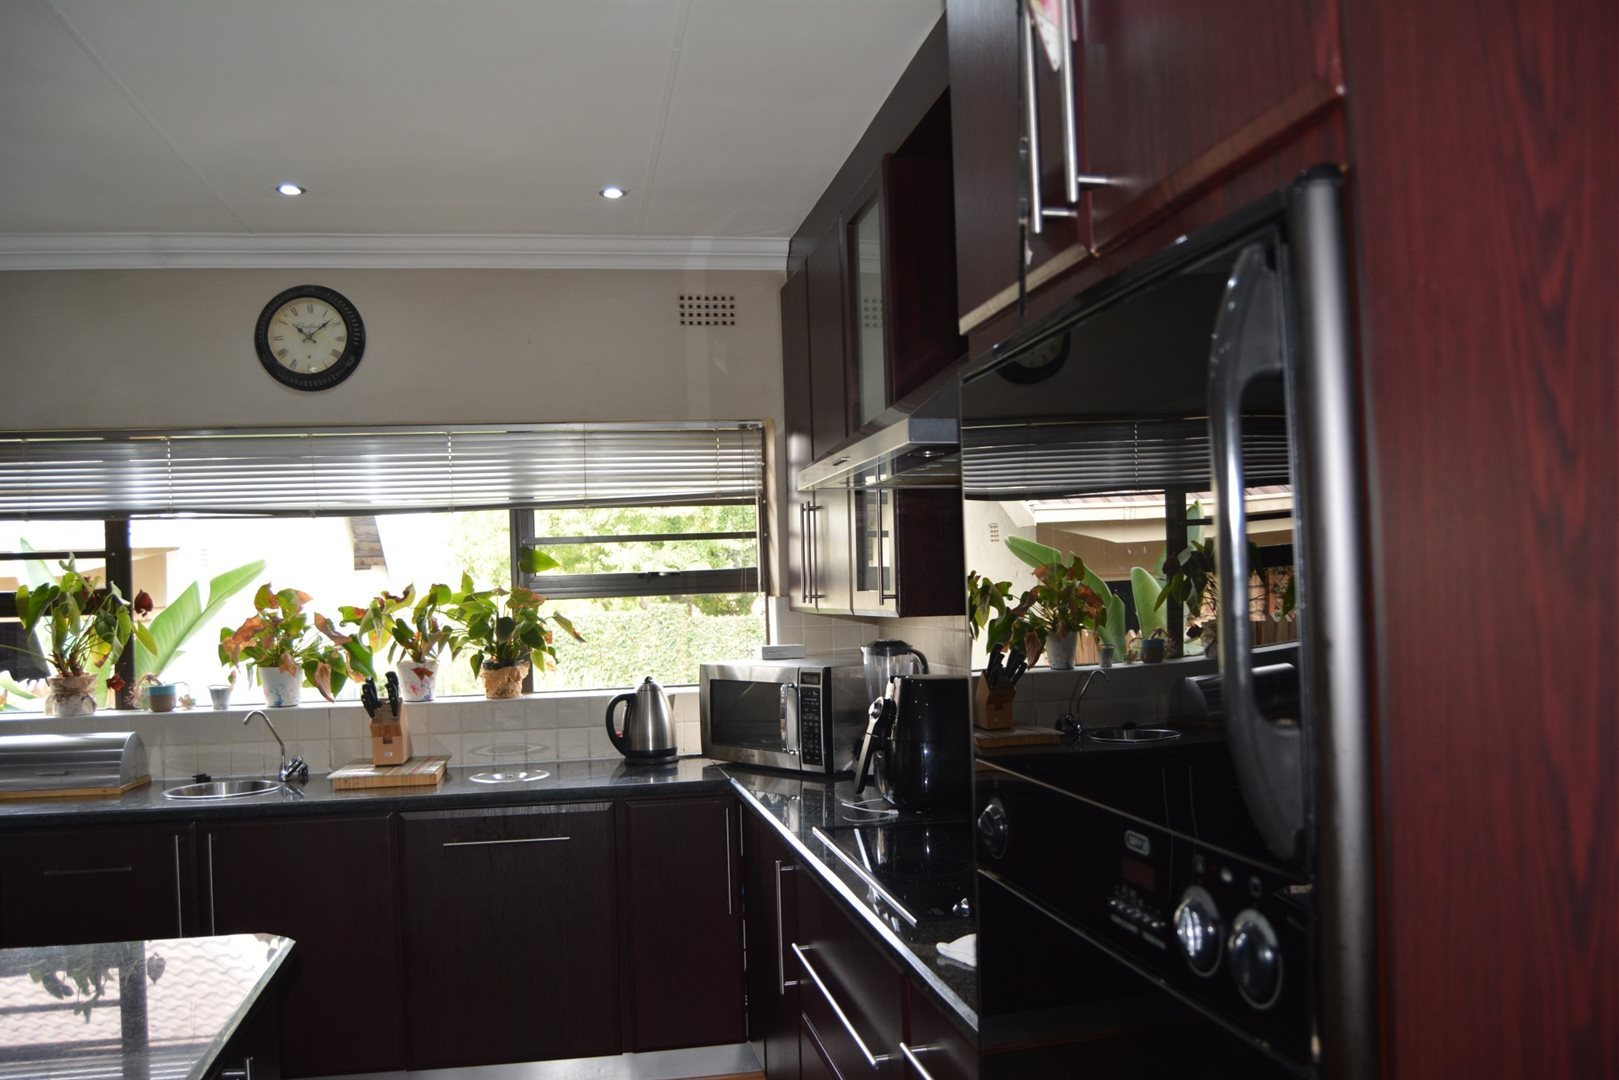 Three Rivers East property for sale. Ref No: 13229414. Picture no 13